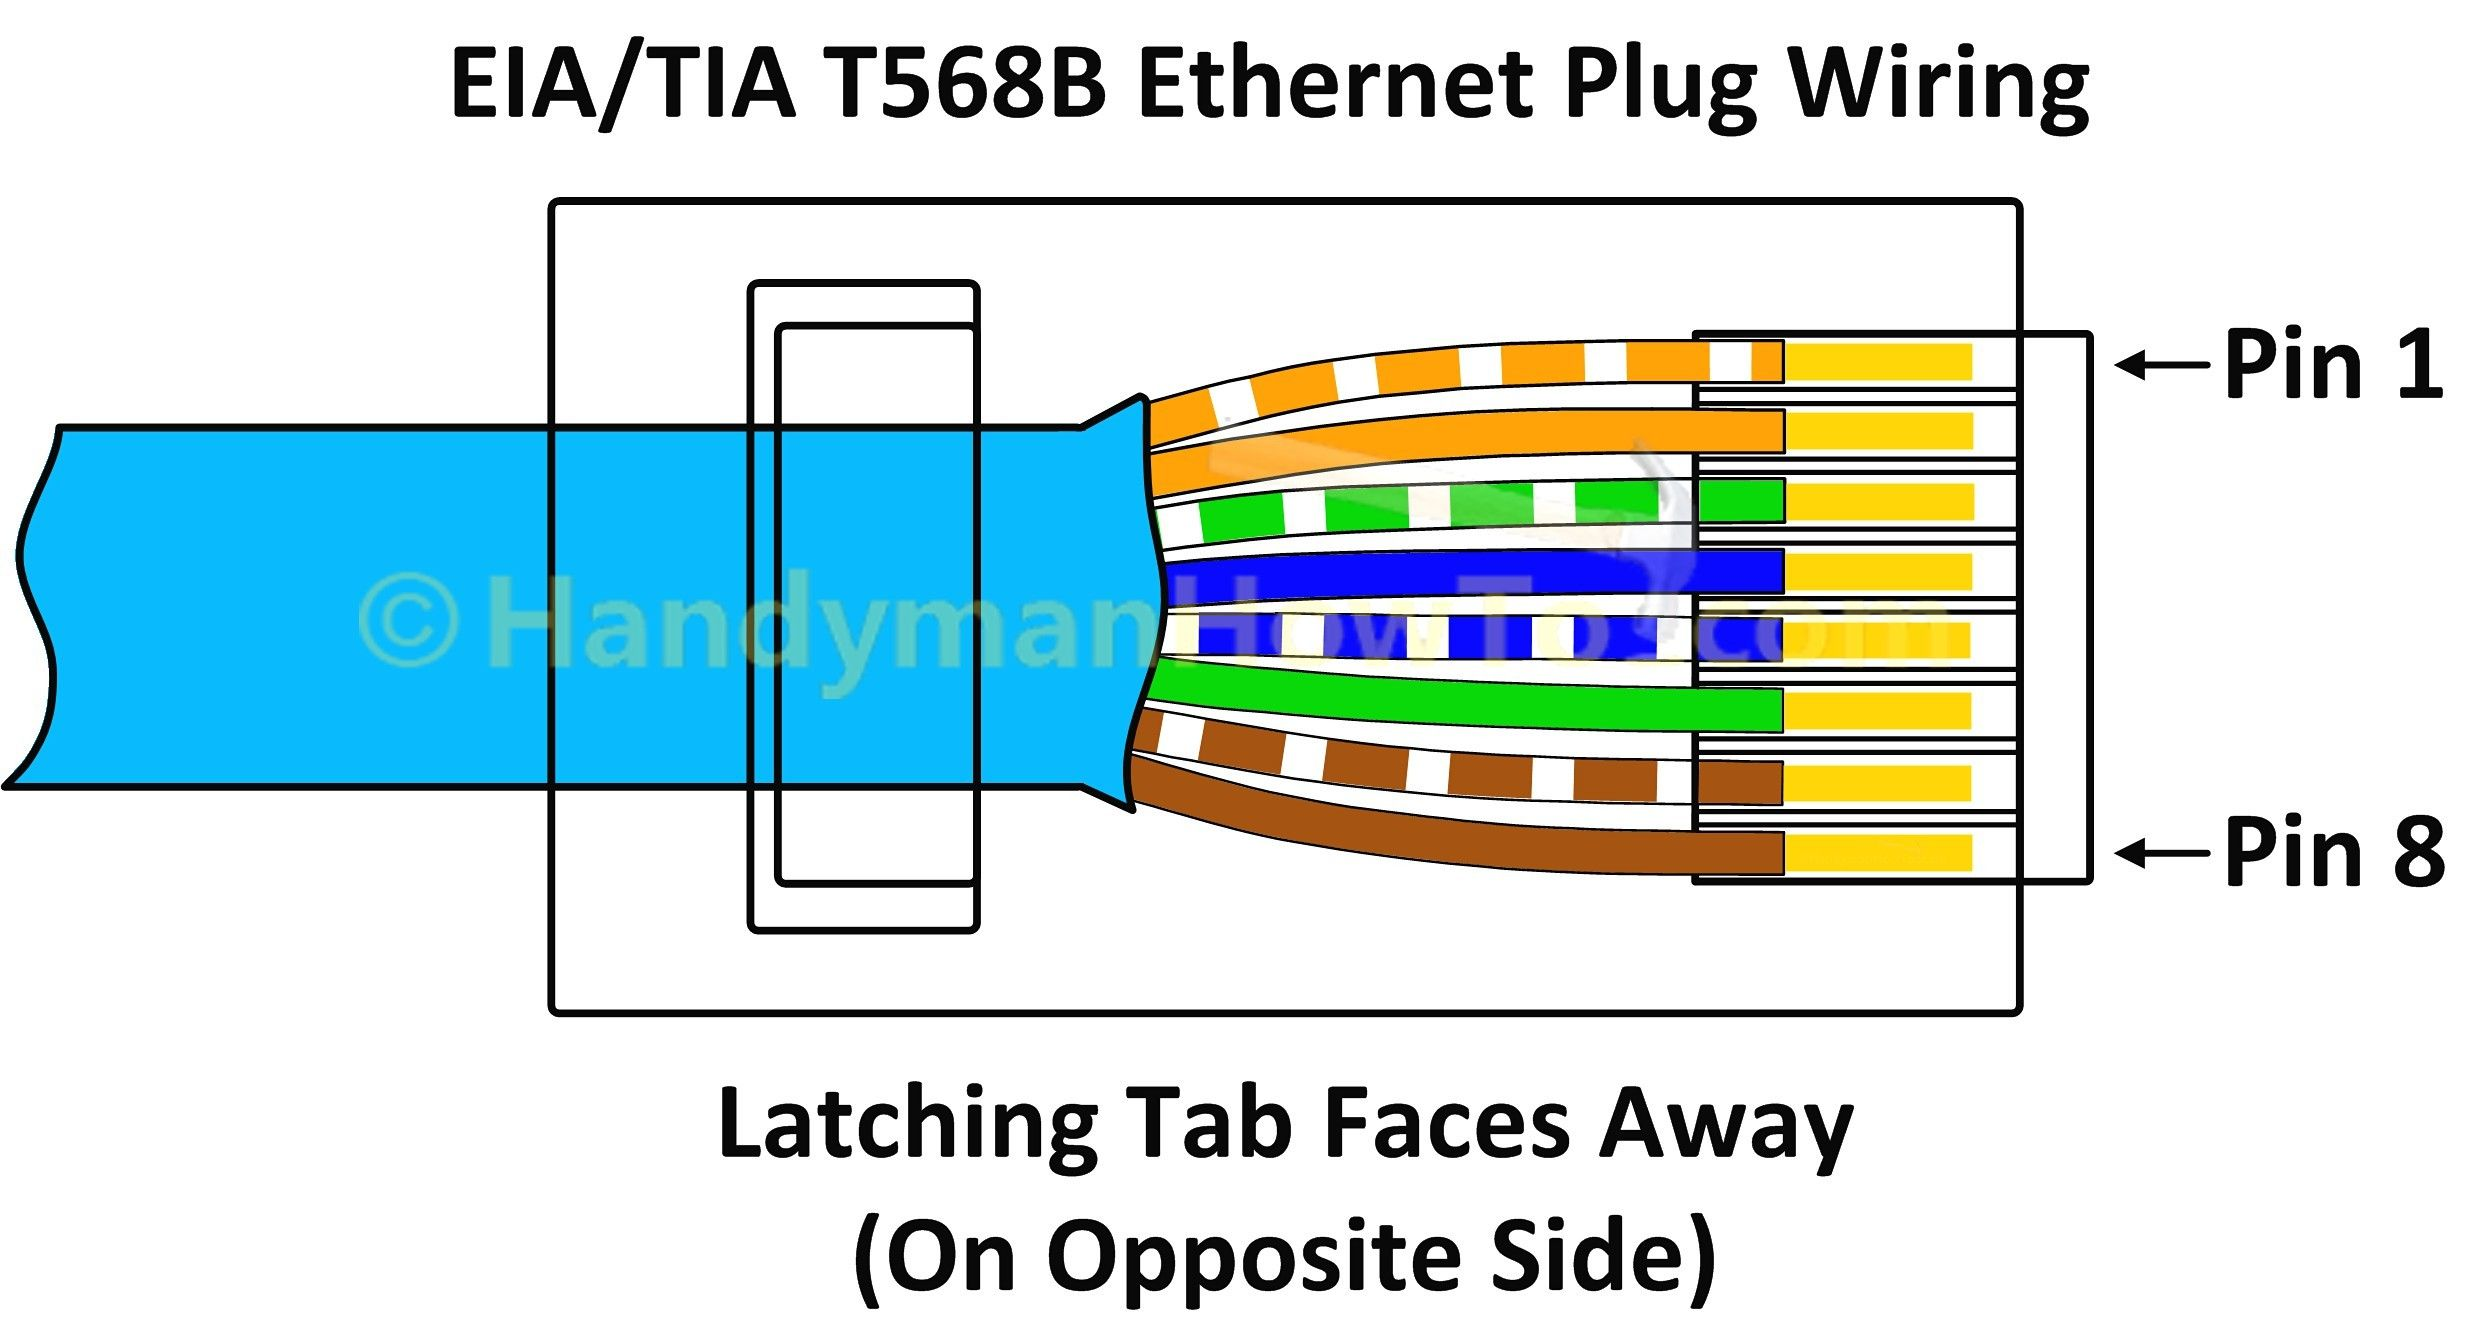 Cat5 Jack Wiring Diagram In 2021 Ethernet Wiring Network Cable Ethernet Cable